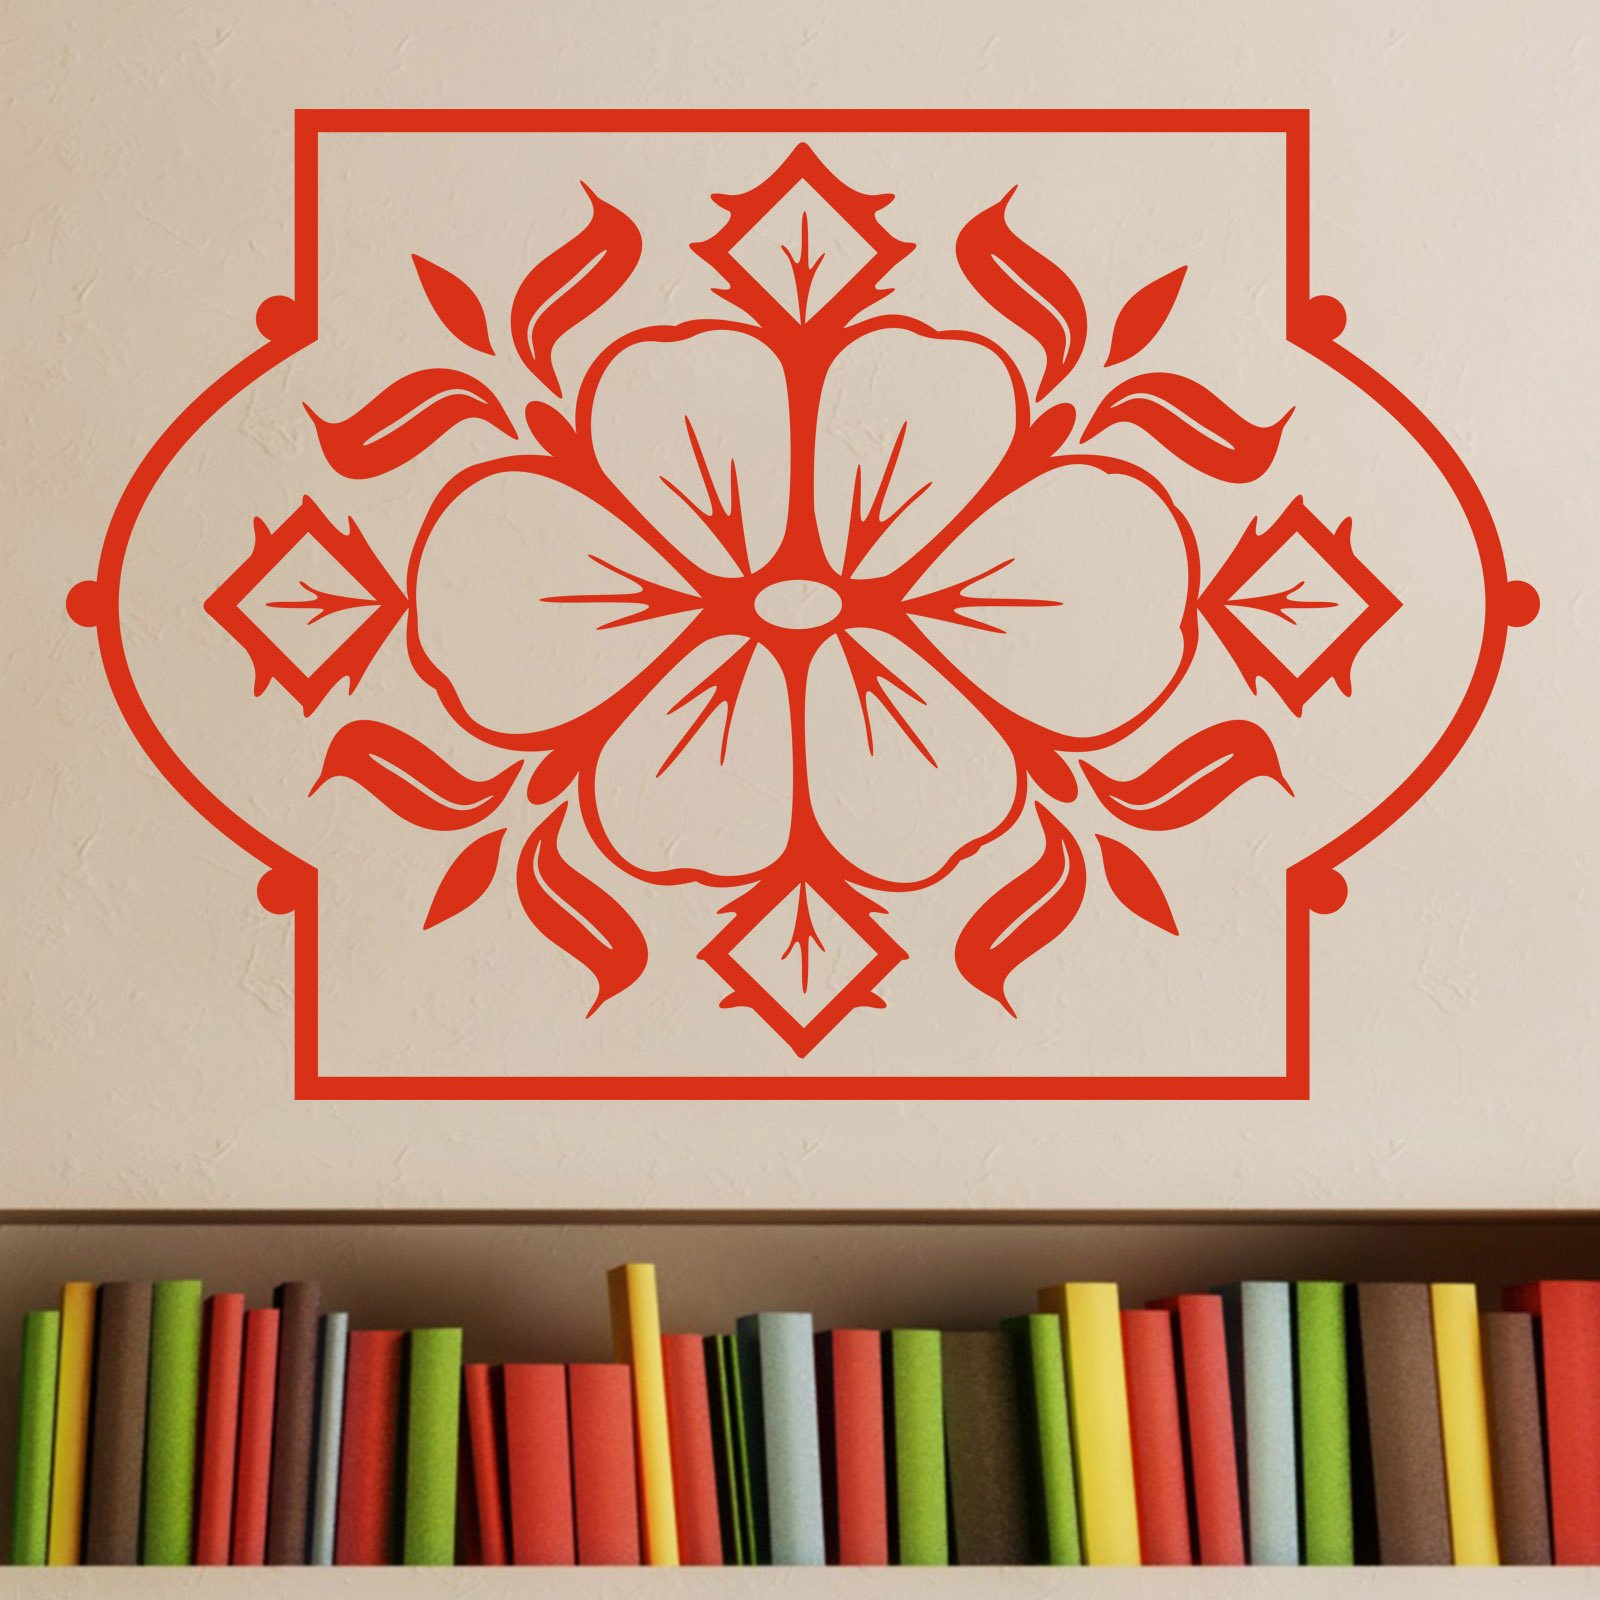 Flower Design in Frame Wall Sticker World of Wall Stickers